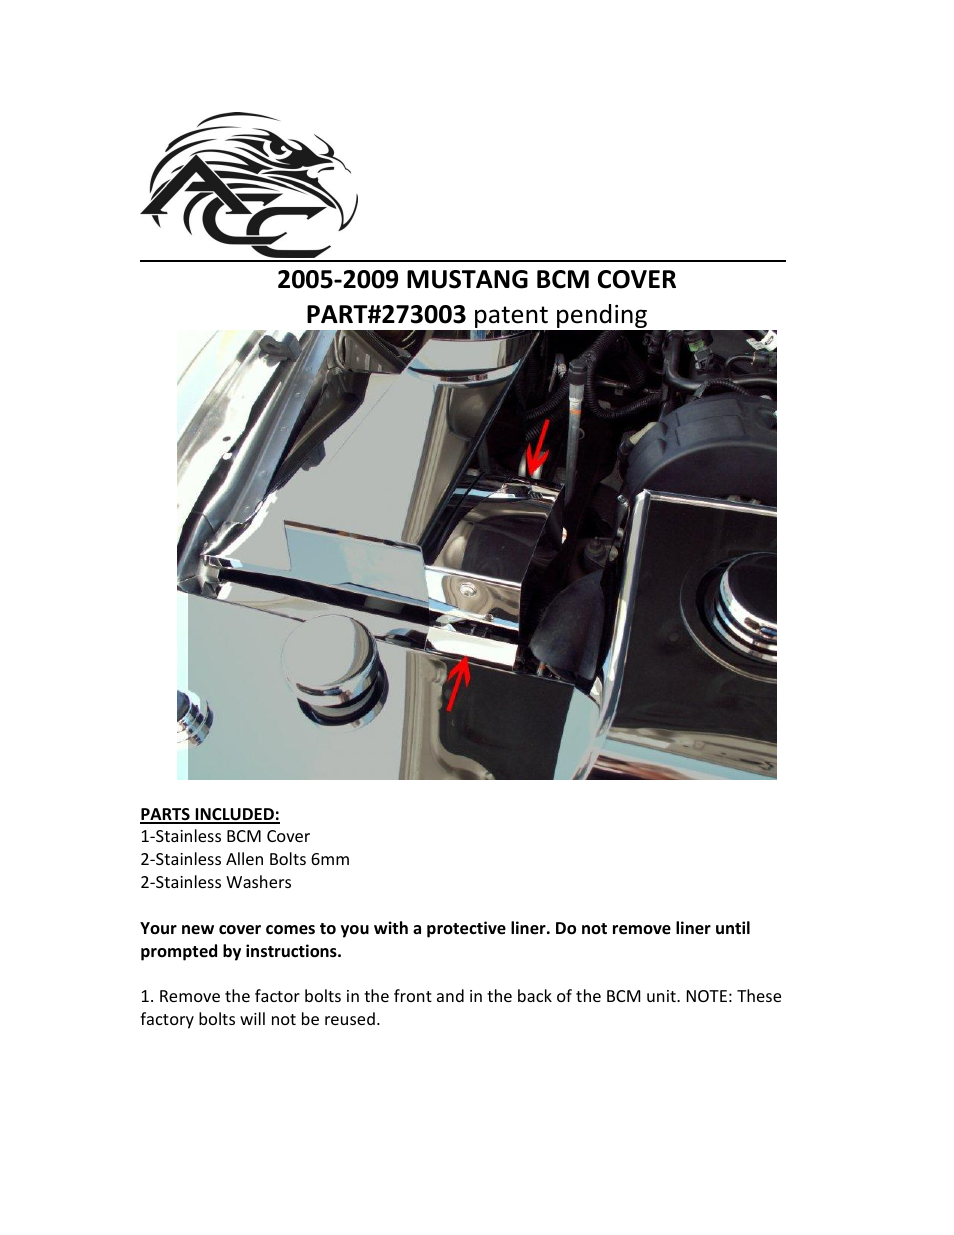 American Car Craft Mustang Bcm Cover Polished Stand Alone V6 Only 2005 2009 User Manual 2 Pages